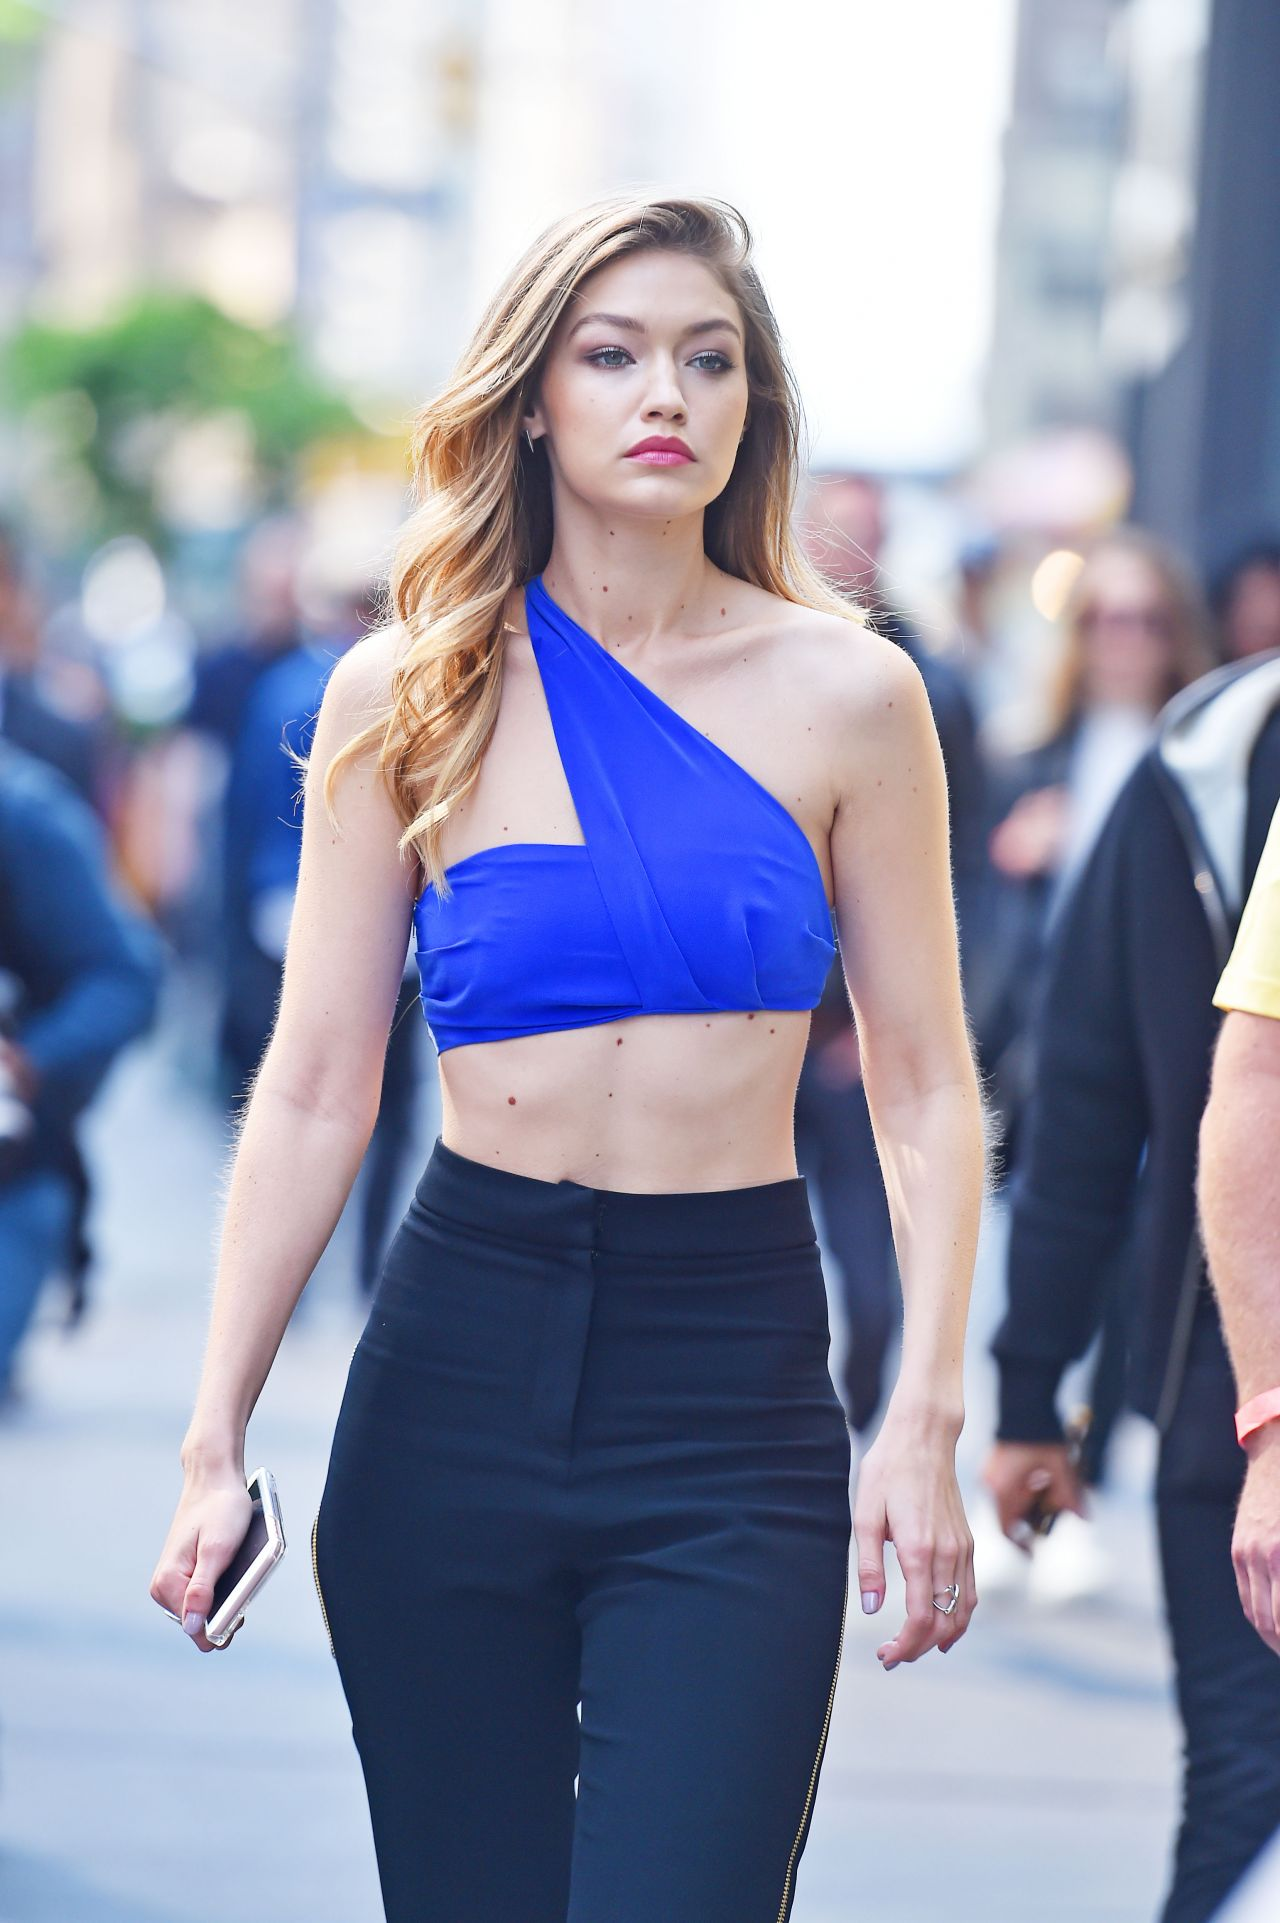 Gigi Hadid Best Beauty Trends: Maybelline Photoshoot Set In New York City 5